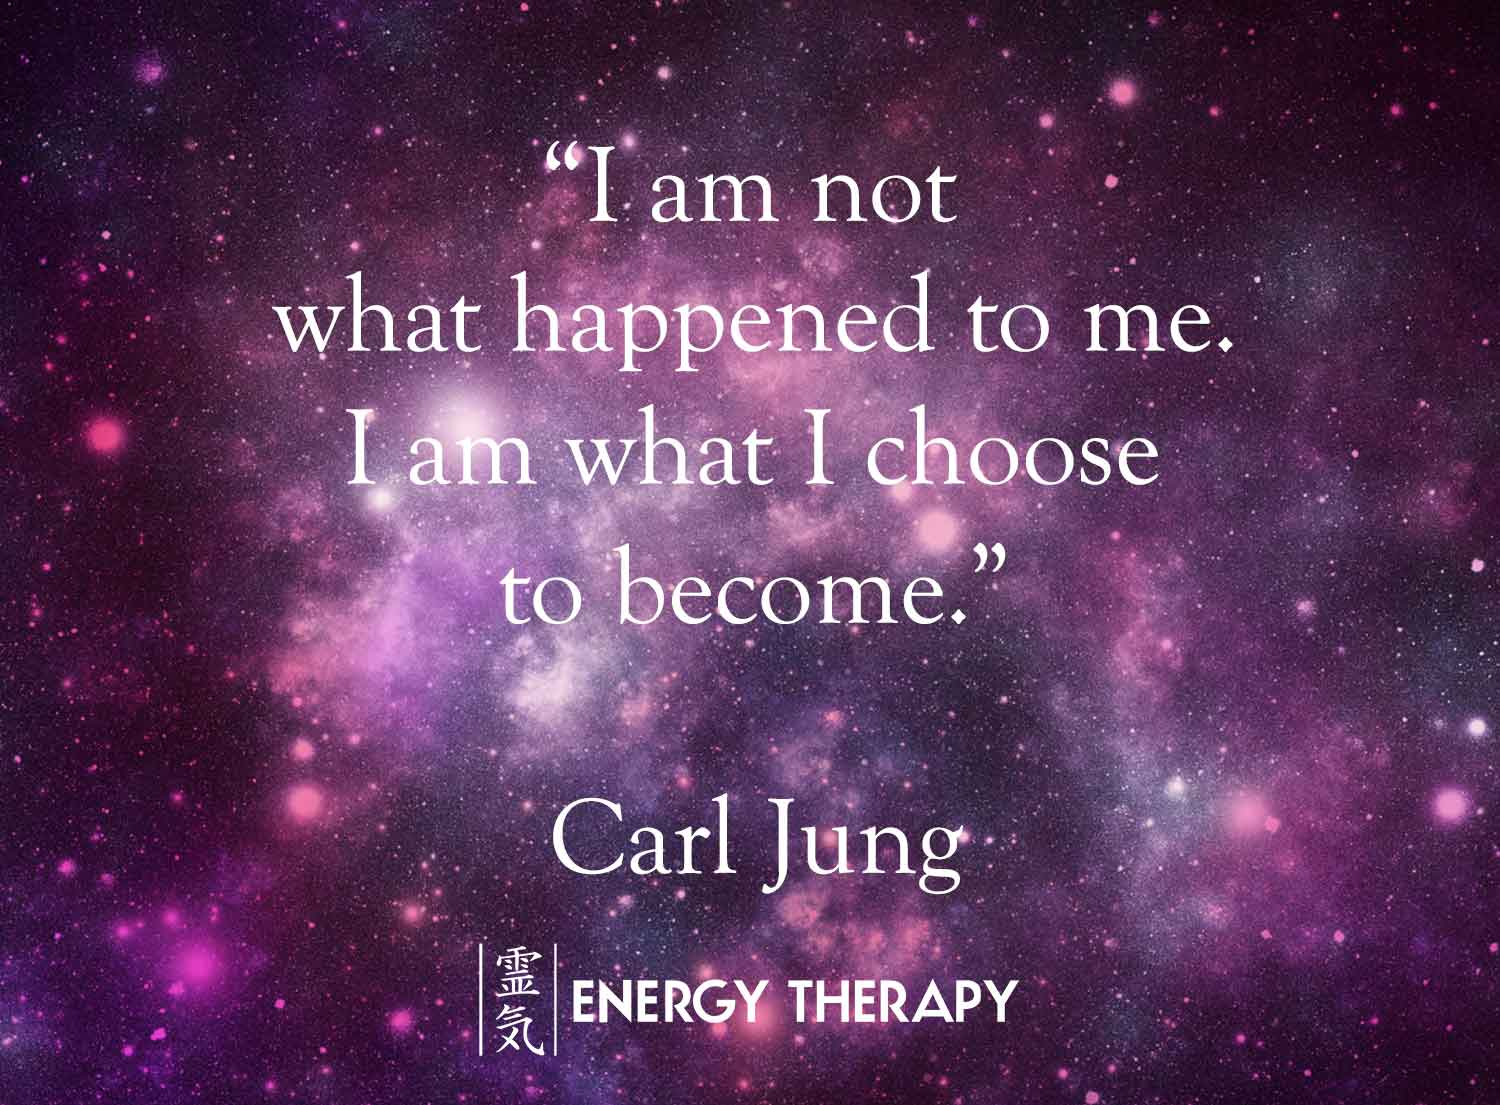 carl jung - i am not what happened to me